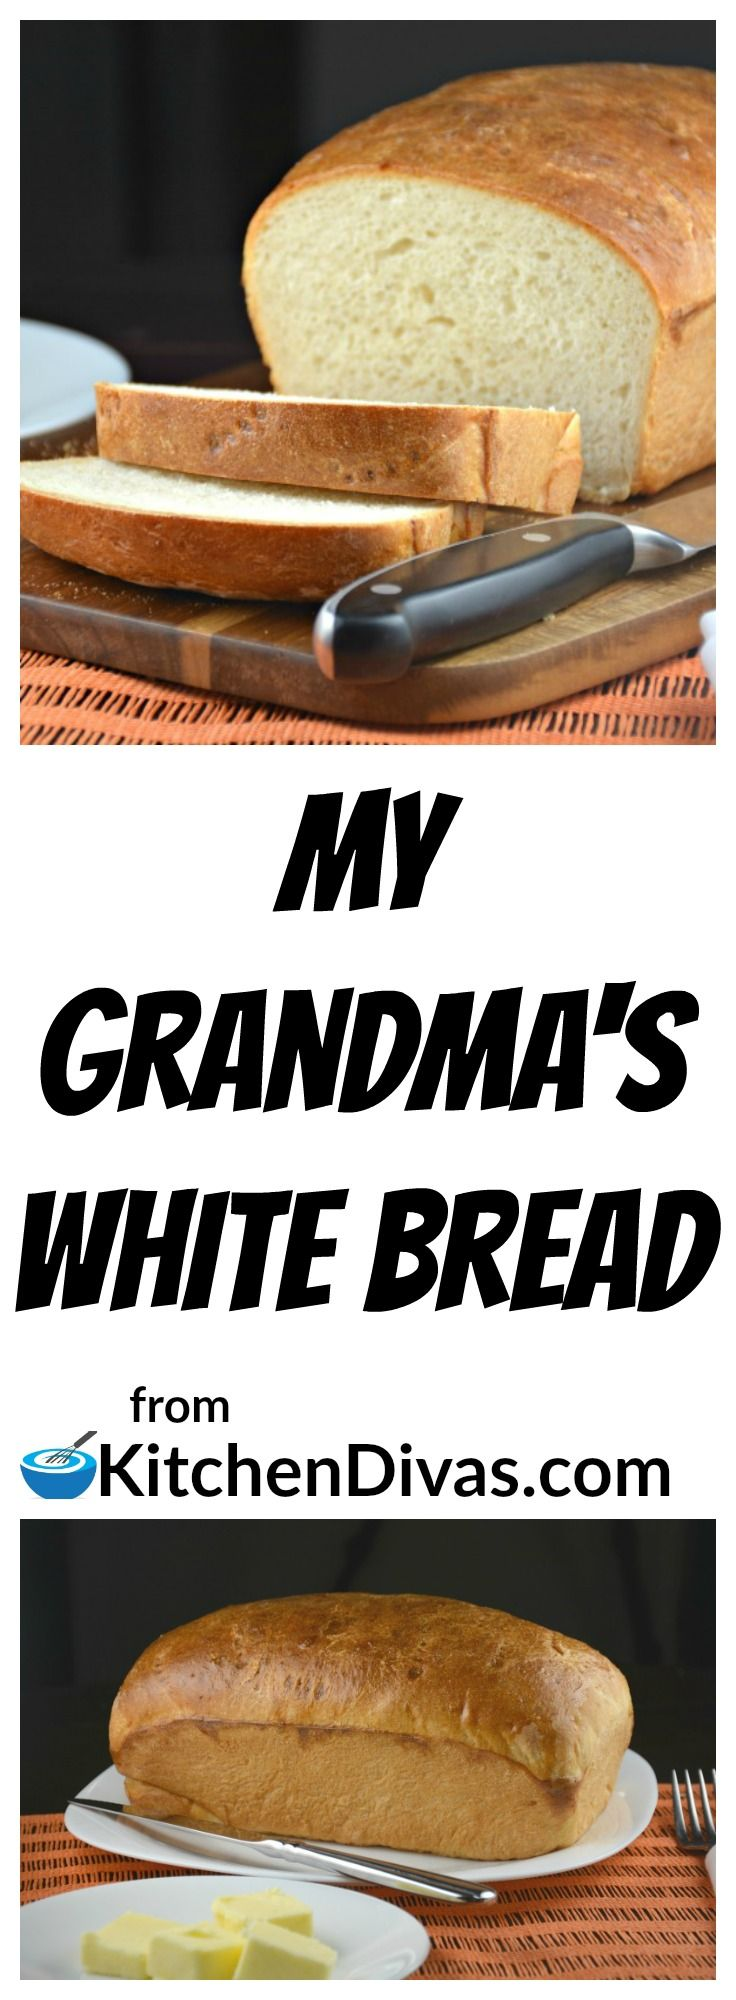 We rarely eat white bread anymore. Every once and a while though, when I am thinking about my grandmother, I have to make a loaf of this bread. I almost need to smell it baking in the house. This is an old recipe but a fabulous one! Works beautifully, every time.